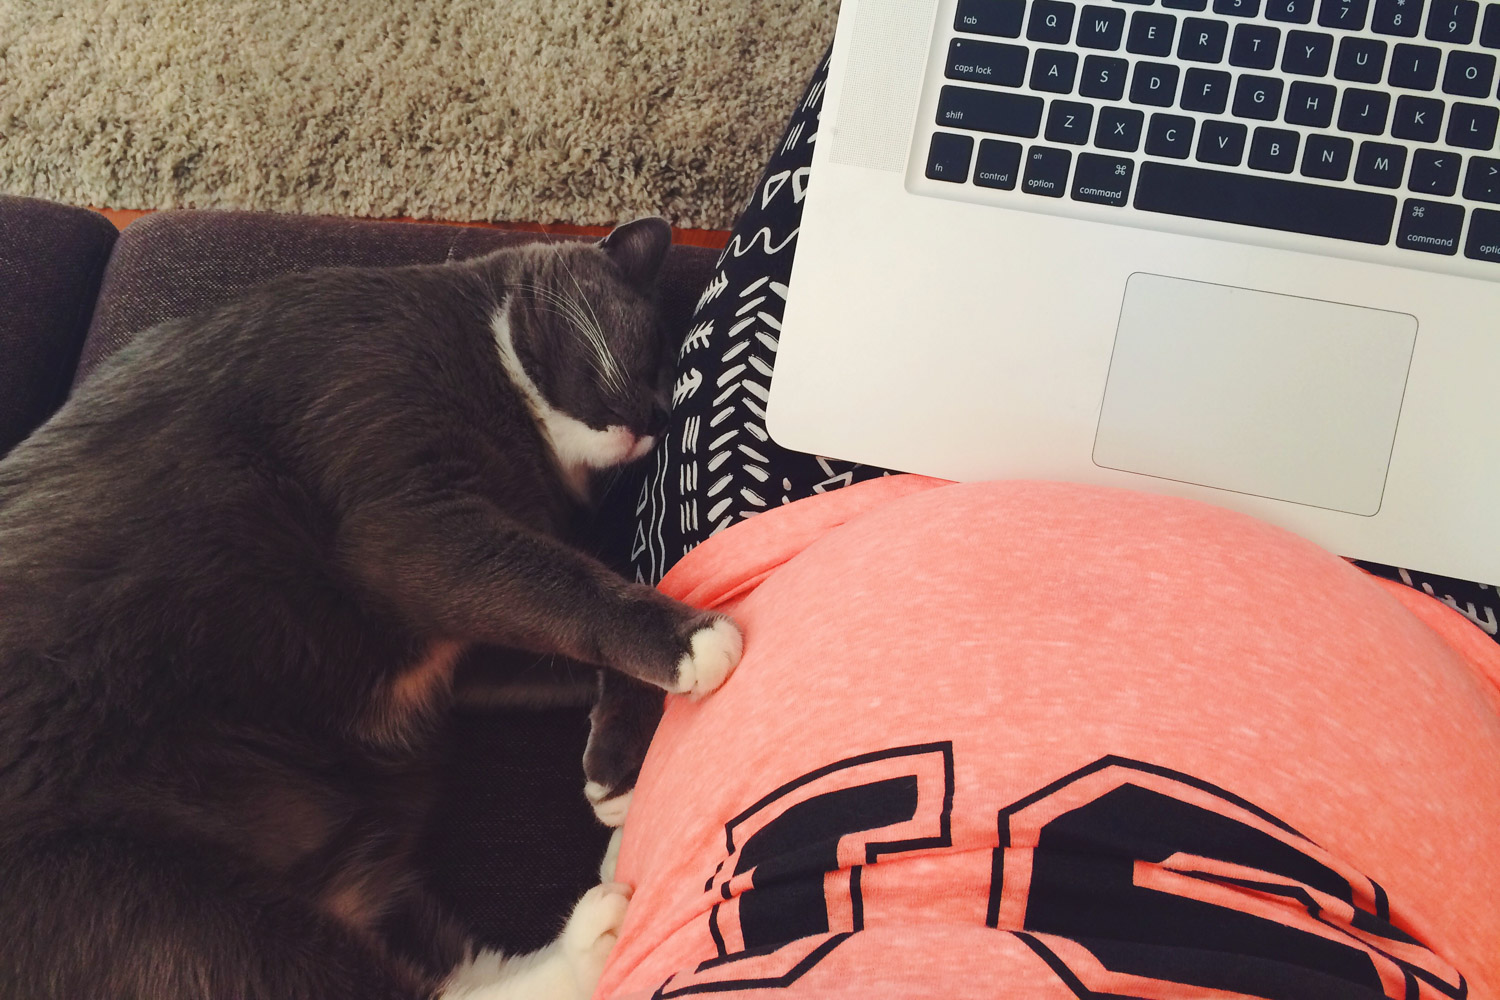 Pregnant mother working with laptop and cat curled up alongside.